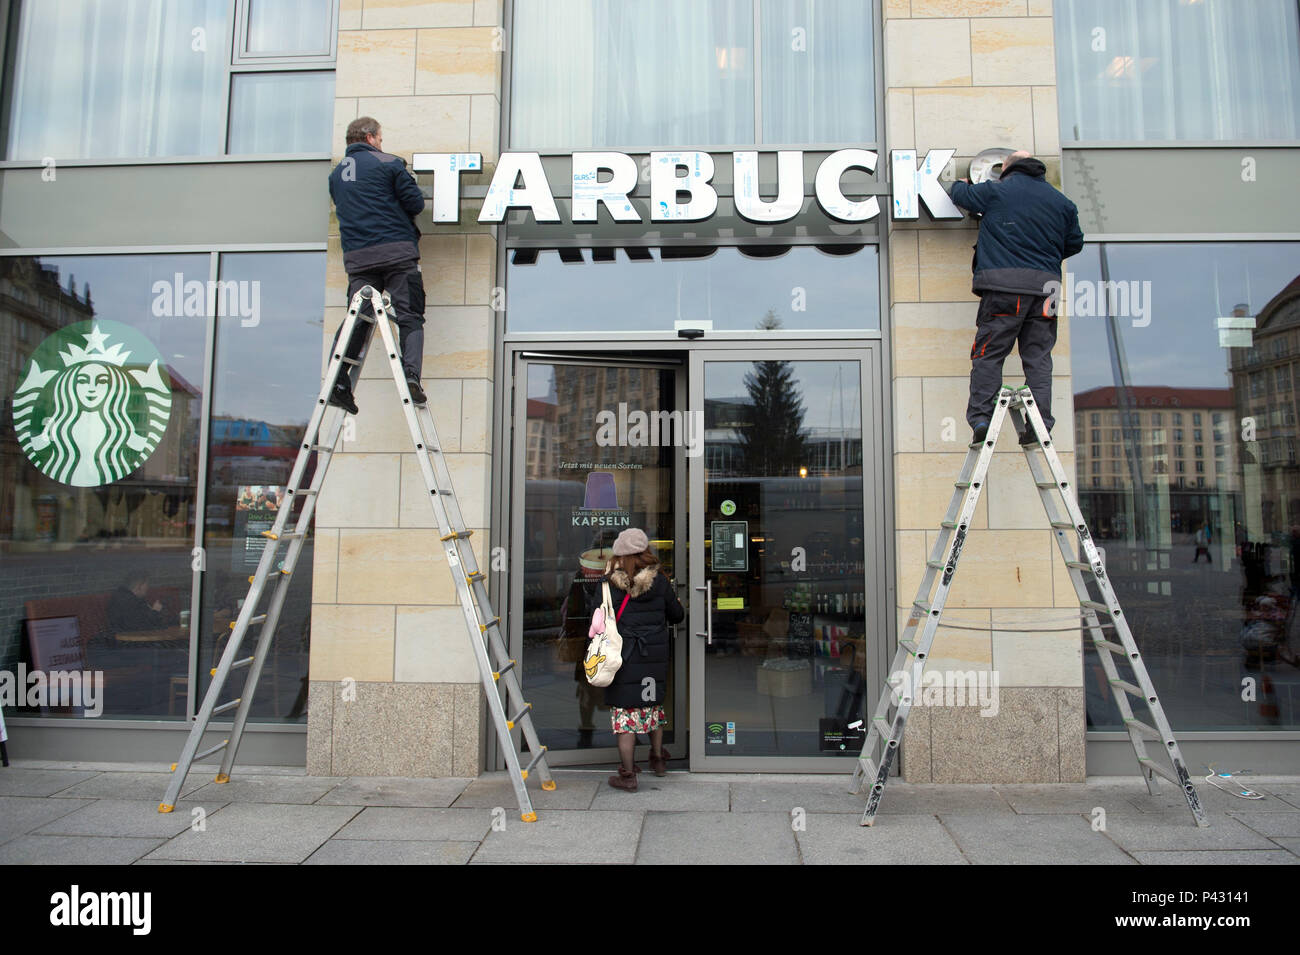 Dresden, Germany. 08th Jan, 2018. The lettering of a 'Starbucks' coffee shop is being attached to a storefront. Credit: Sebastian Kahnert/dpa-Zentralbild/dpa/Alamy Live News - Stock Image